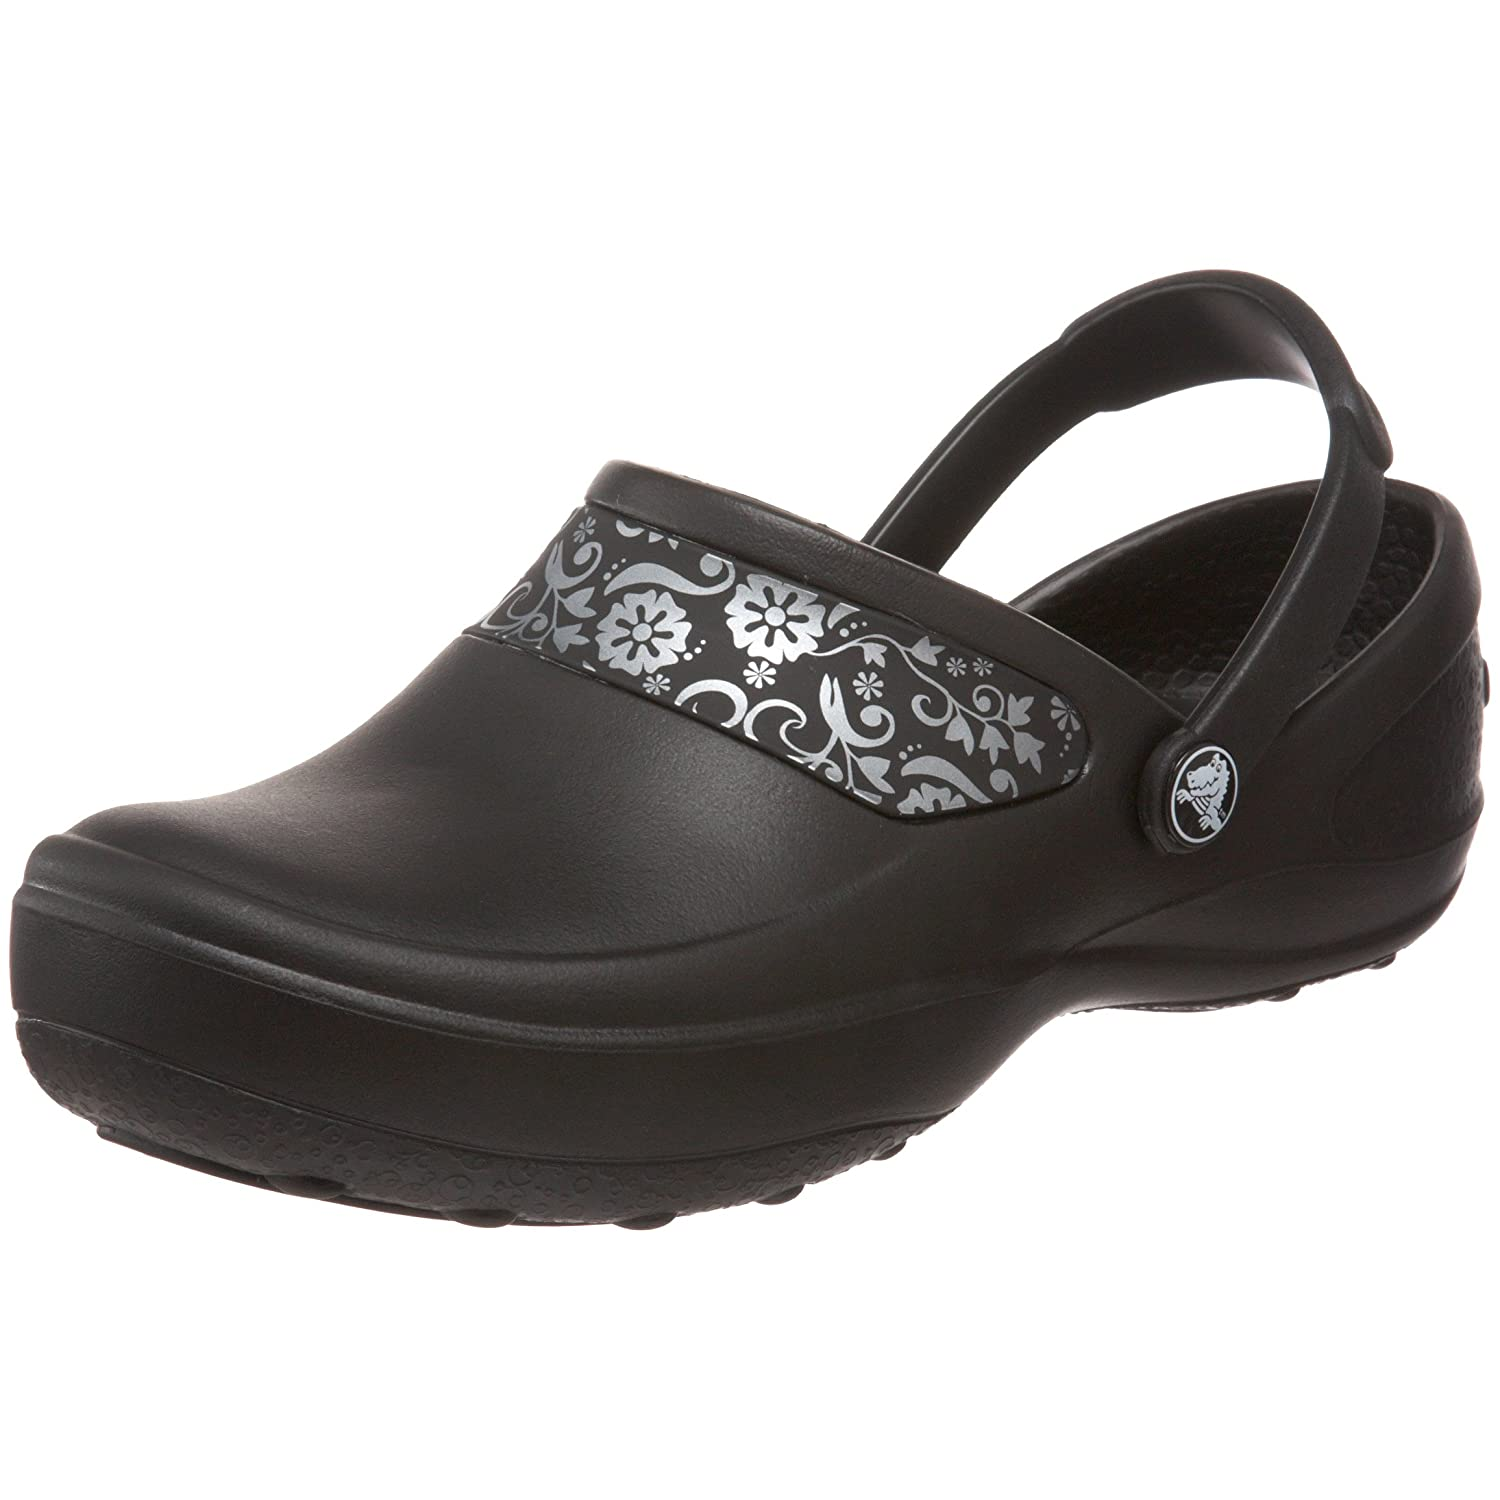 Crocs Mercy Clog